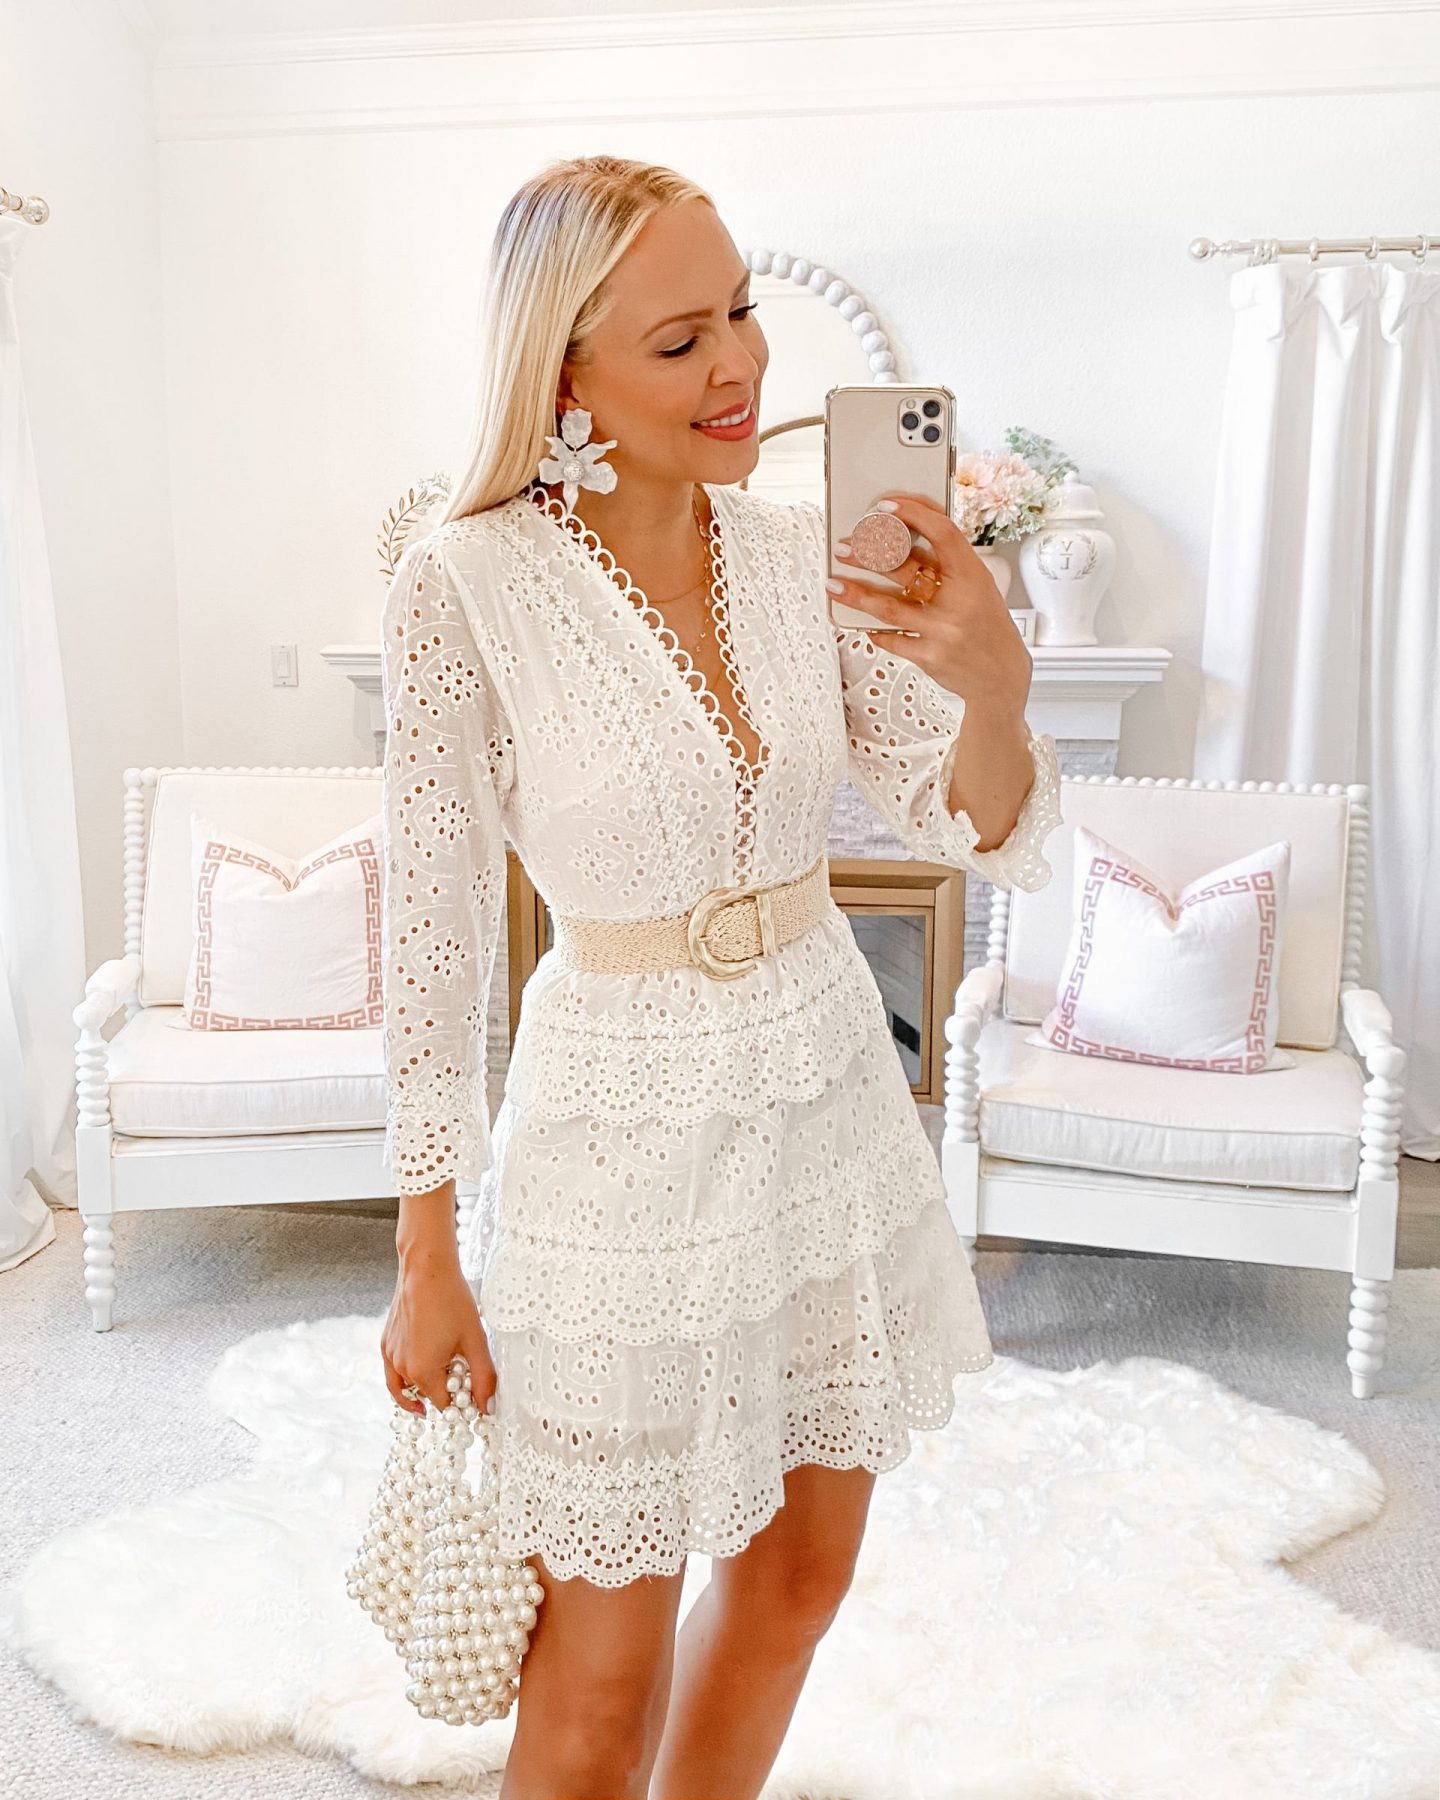 White dress style inspiration for summer, by Lombard & Fifth Veronica Levy.